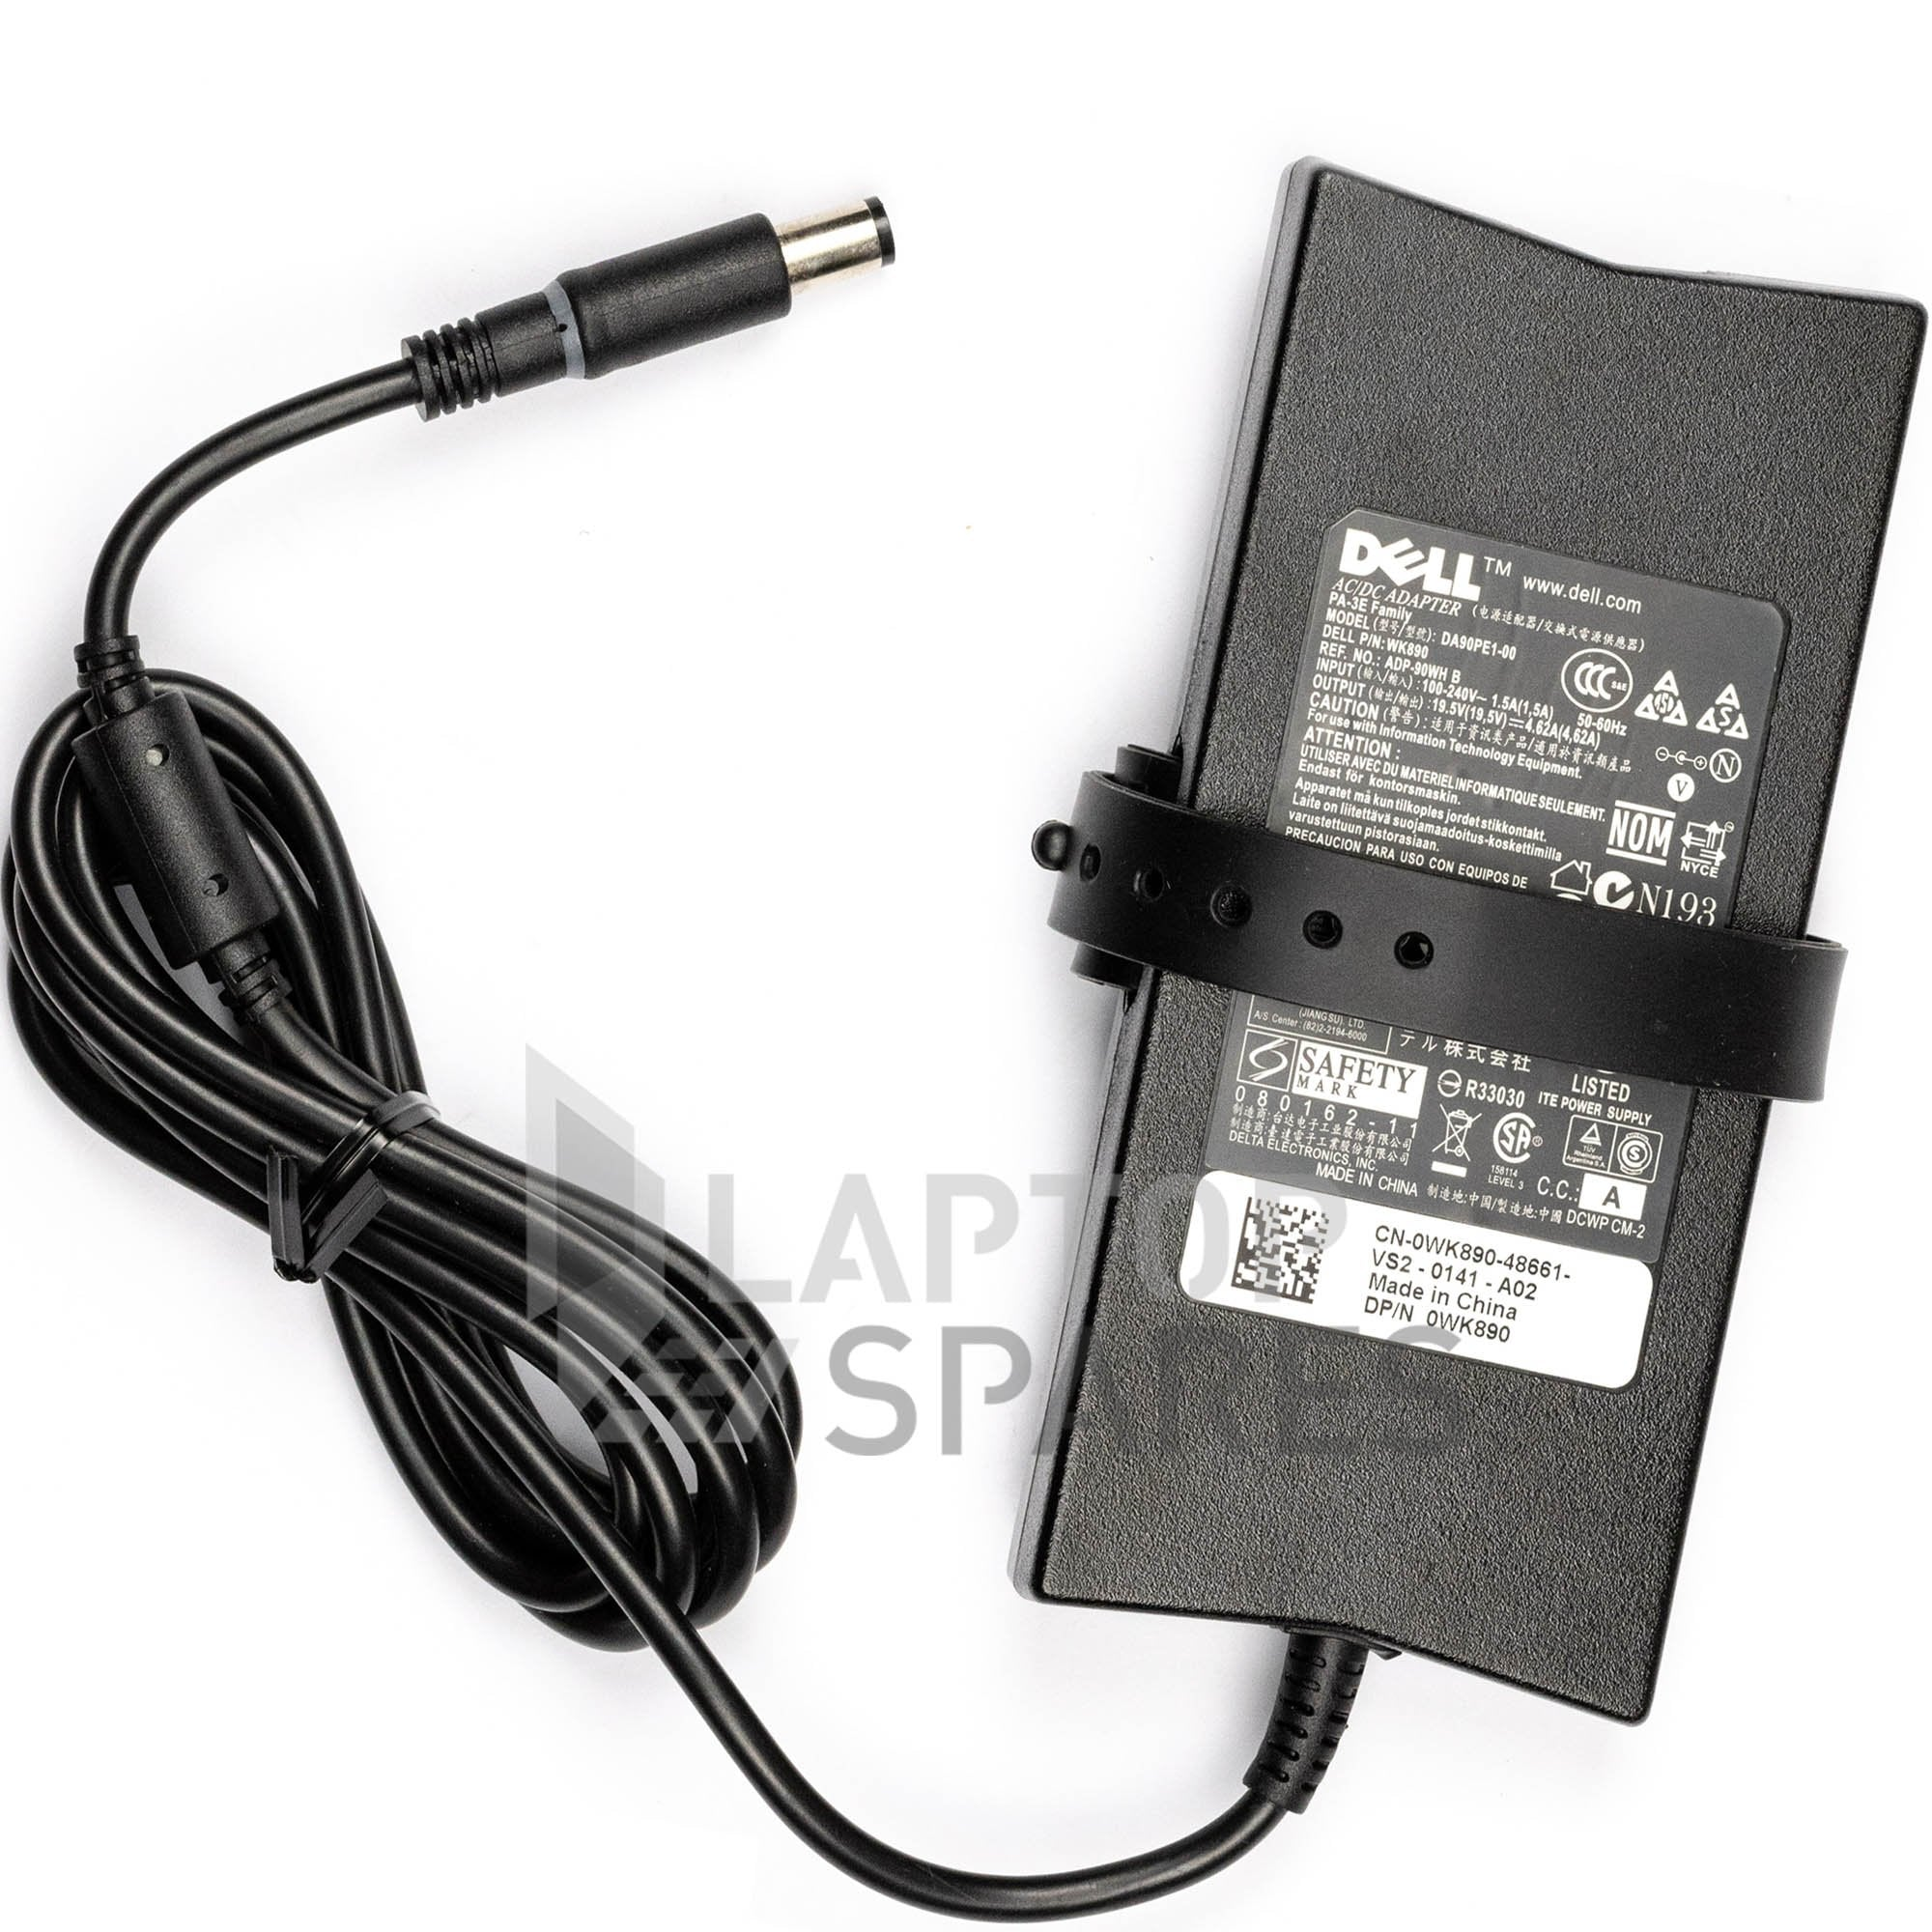 Dell Studio 1559 1569 Laptop Slim AC Adapter Charger